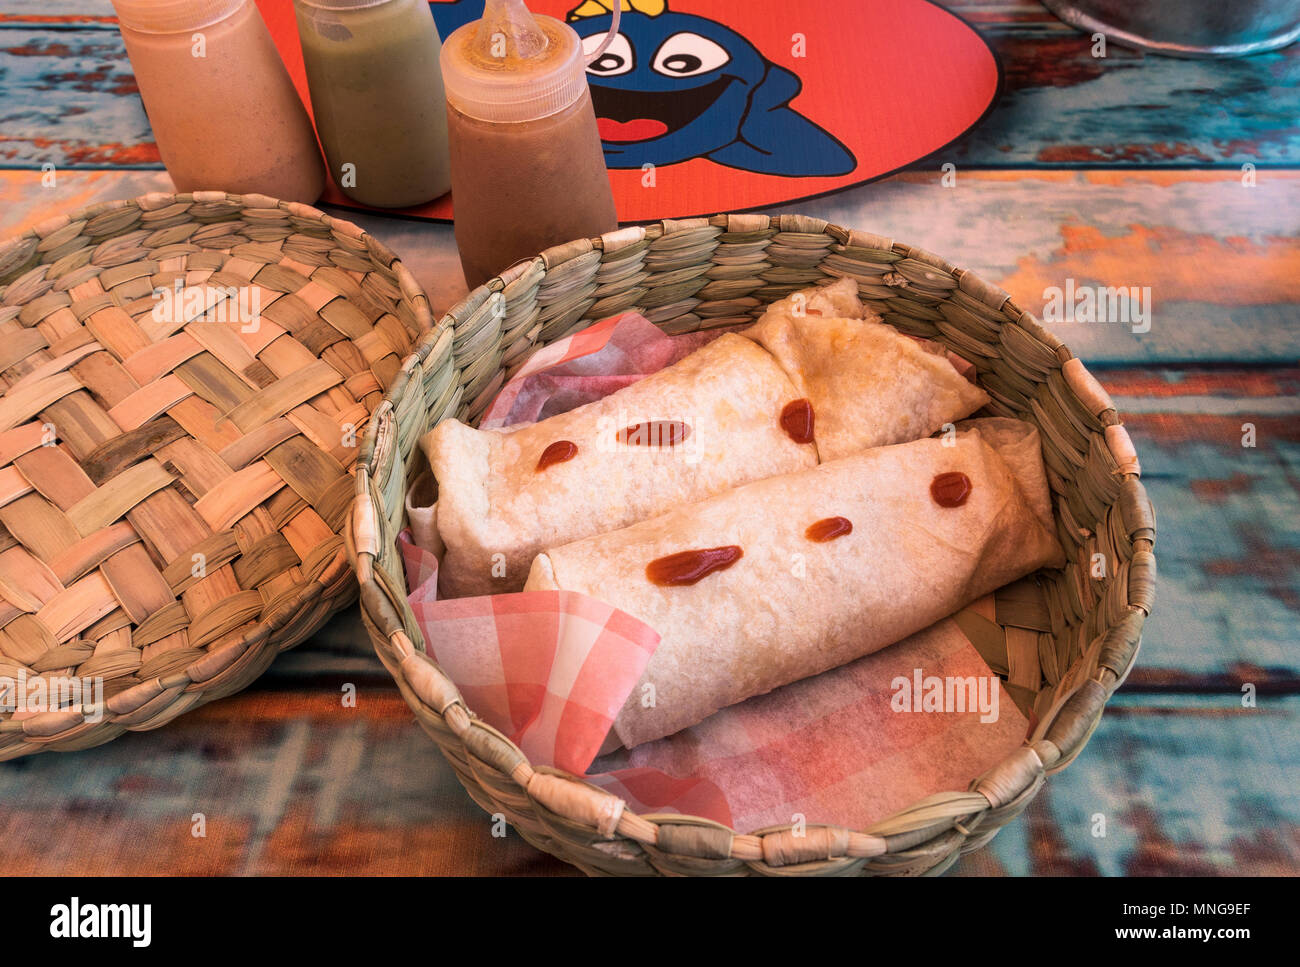 Basket with two shrimp burritos on a table at Baja Fish Taquito in San Miguel de Allende, Mexico - Stock Image